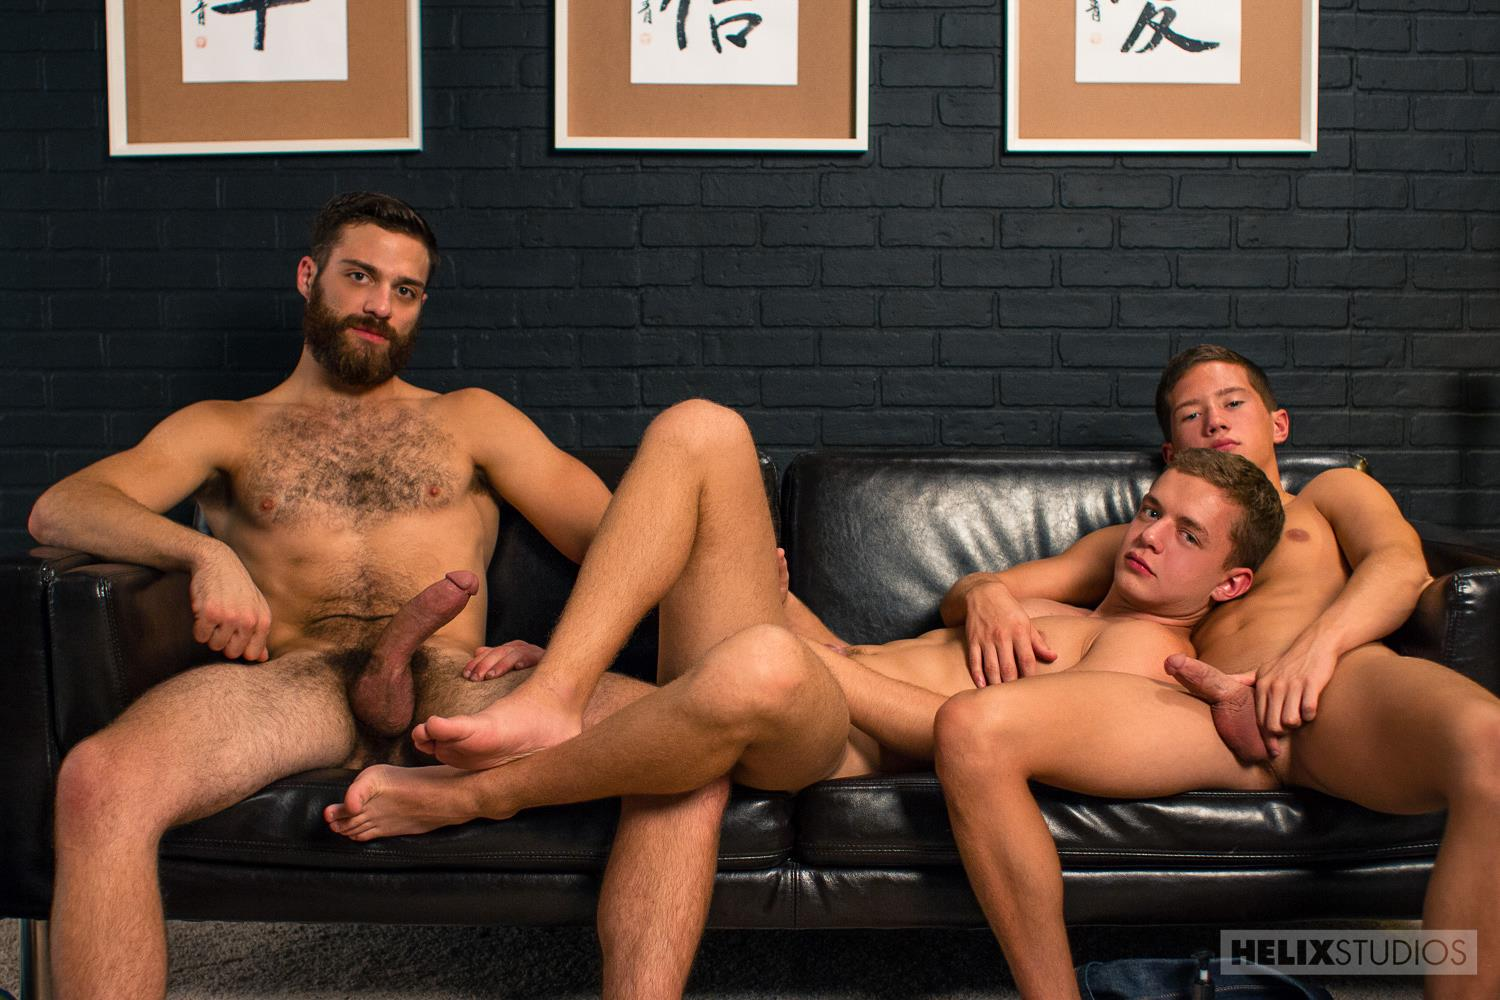 Helix-Studios-8TeenBoy-Ian-Levine-and-Tommy-Defendi-and-Tyler-Hill-Twinks-Getting-Fucked-Amateur-Gay-Porn-02 Twink Boyfriends Learn How To Fuck From Tommy Defendi